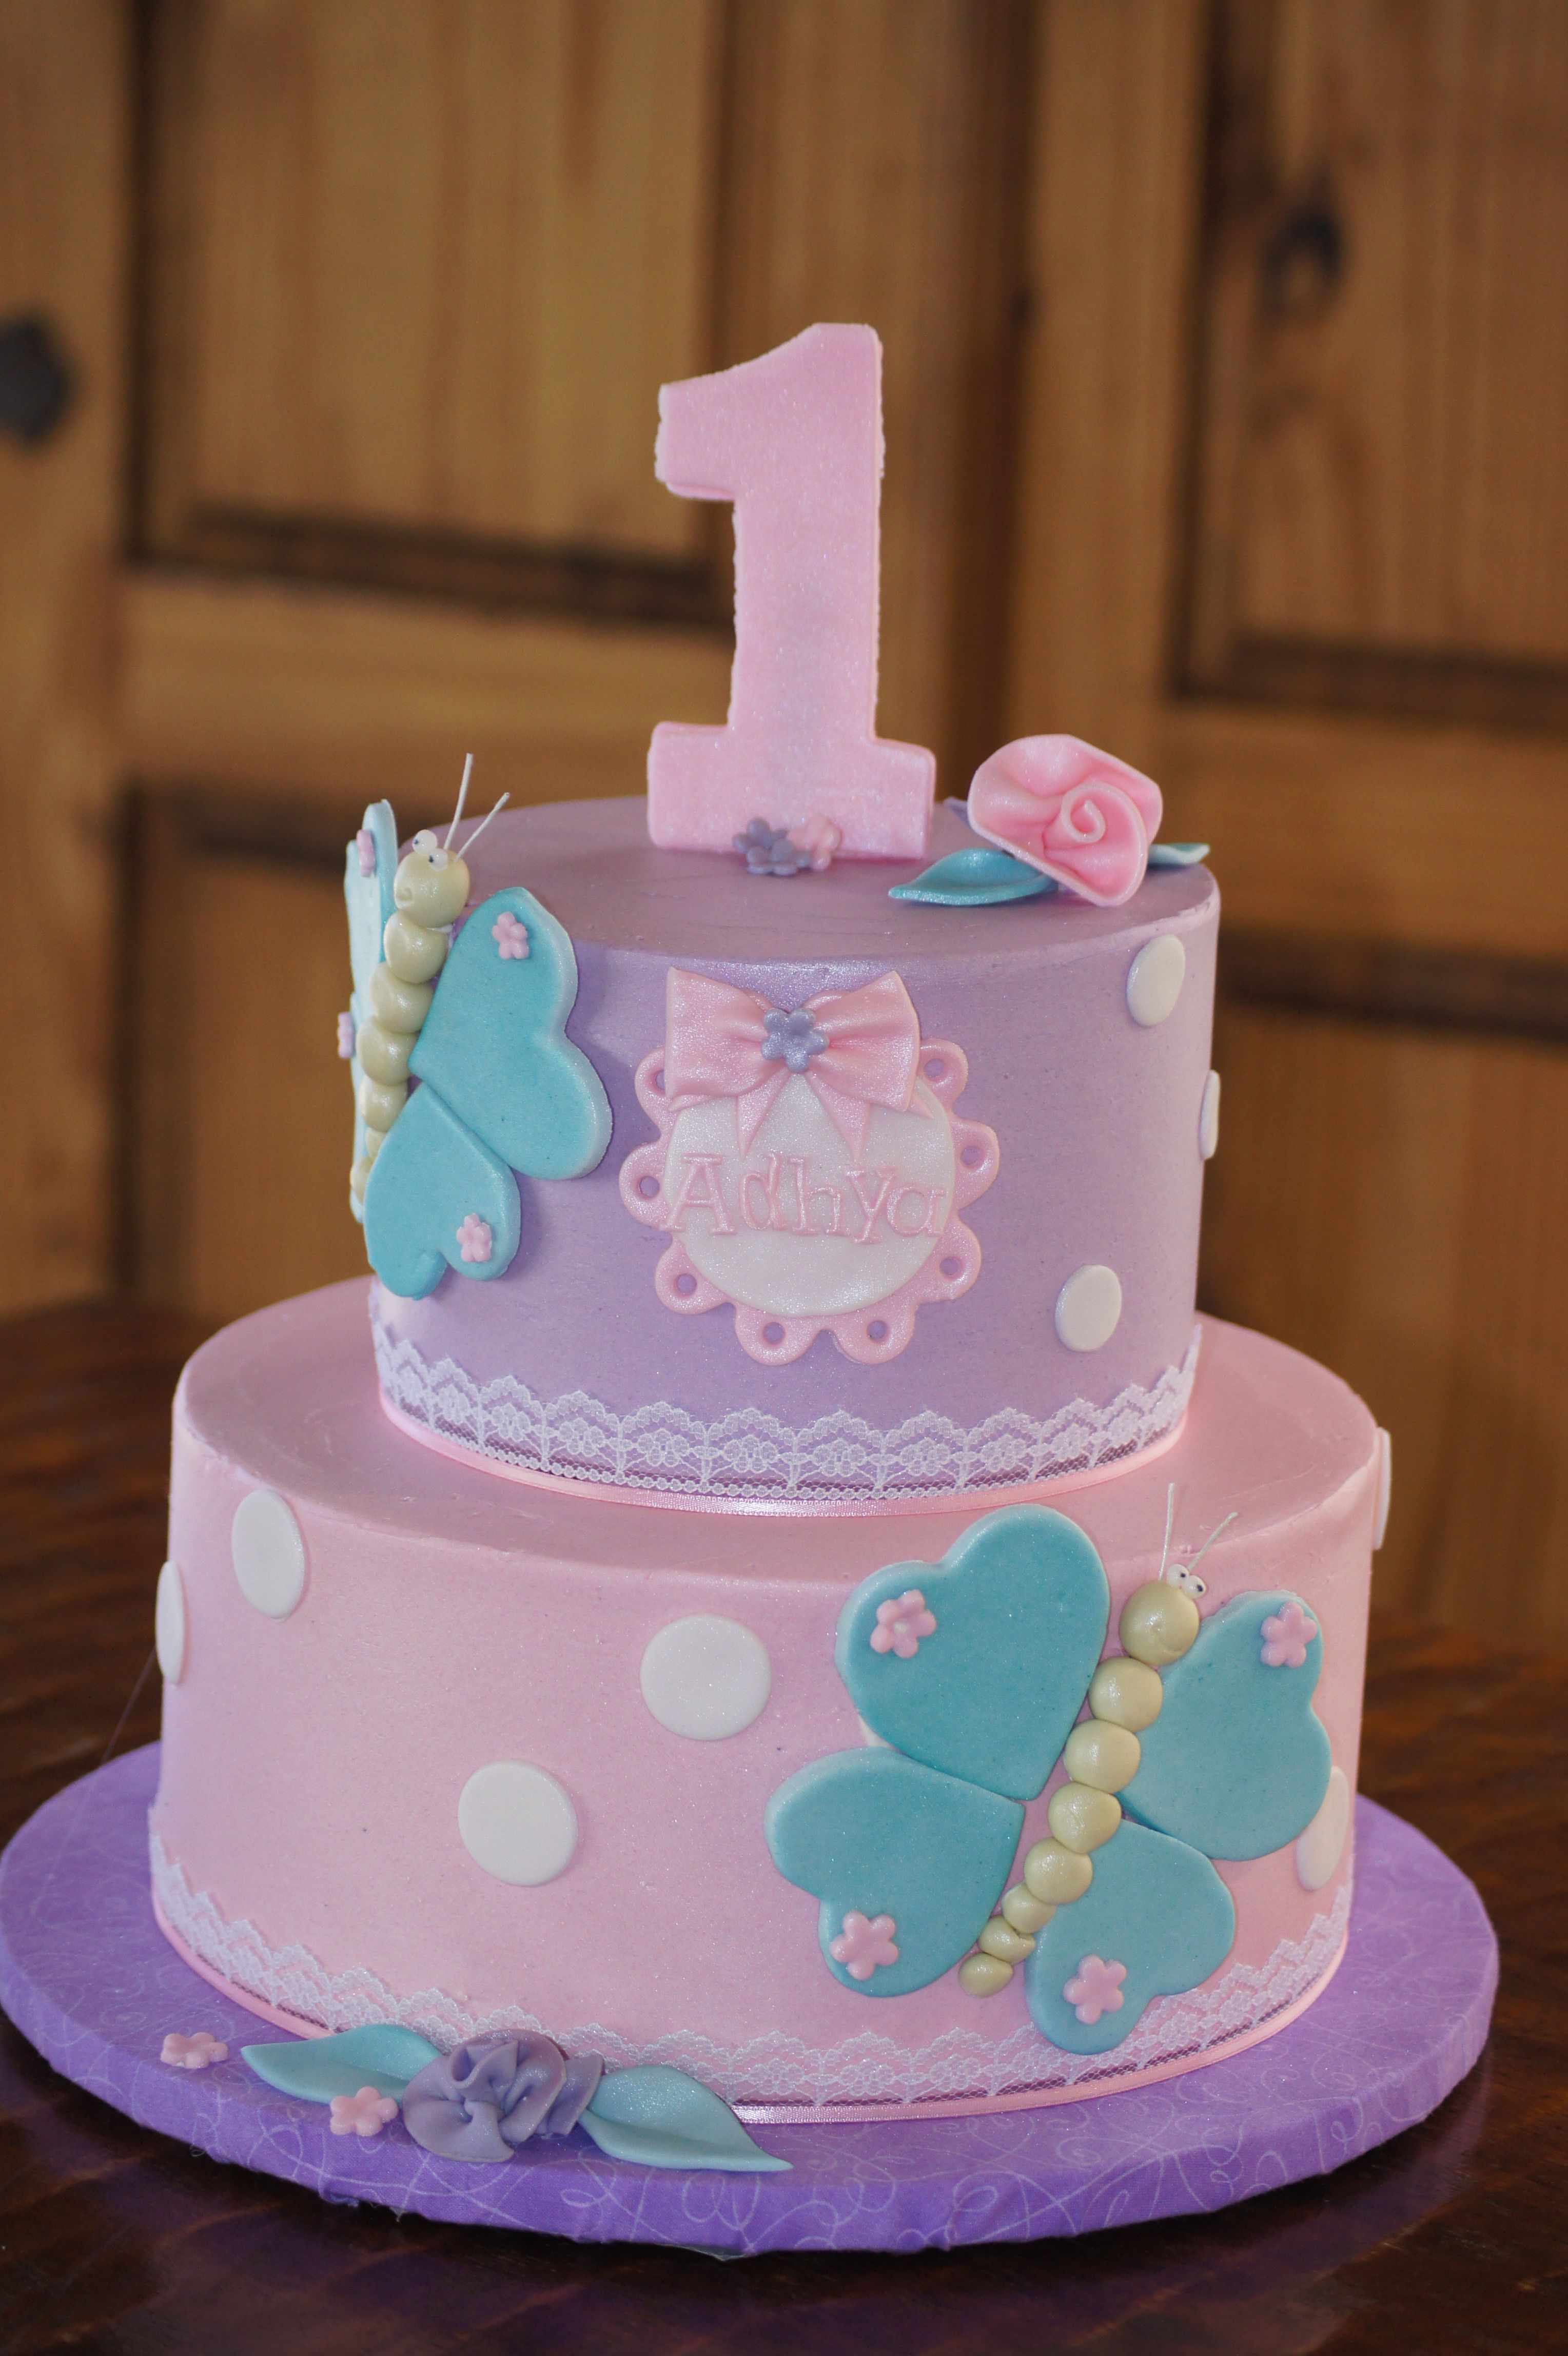 Tiered pink and purple butterfly cake with white polka